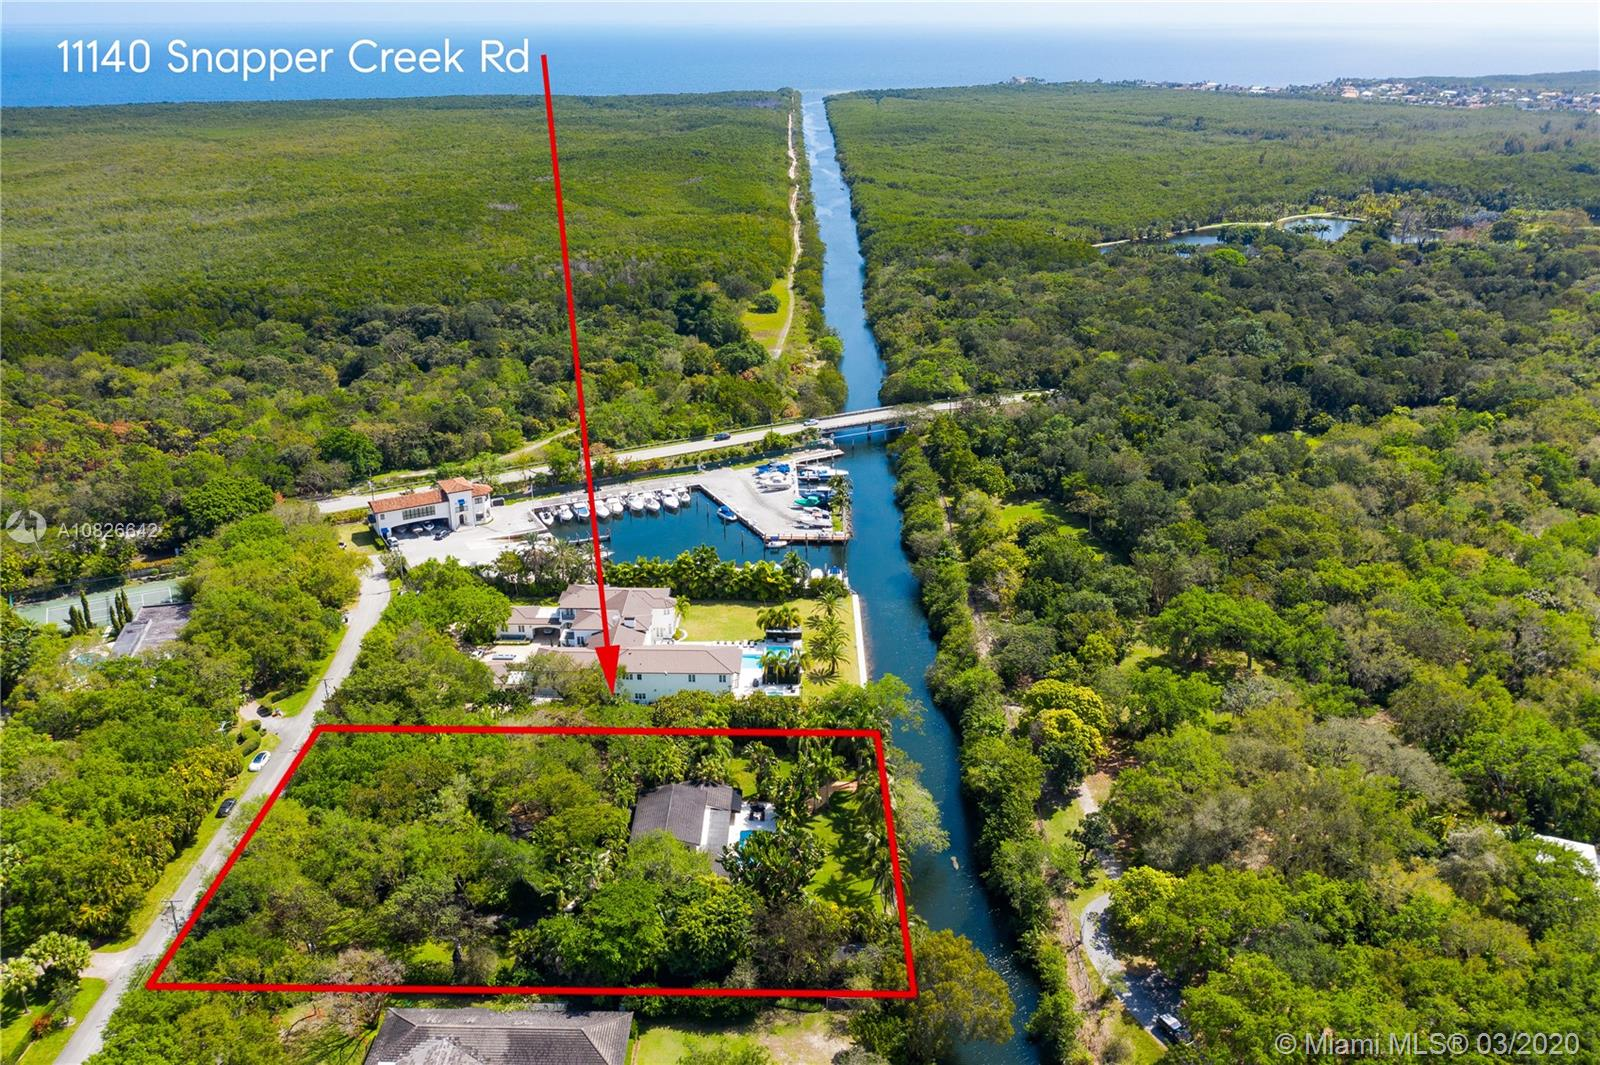 11140 Snapper Creek Rd Lot 9, one of homes for sale in Coral Gables